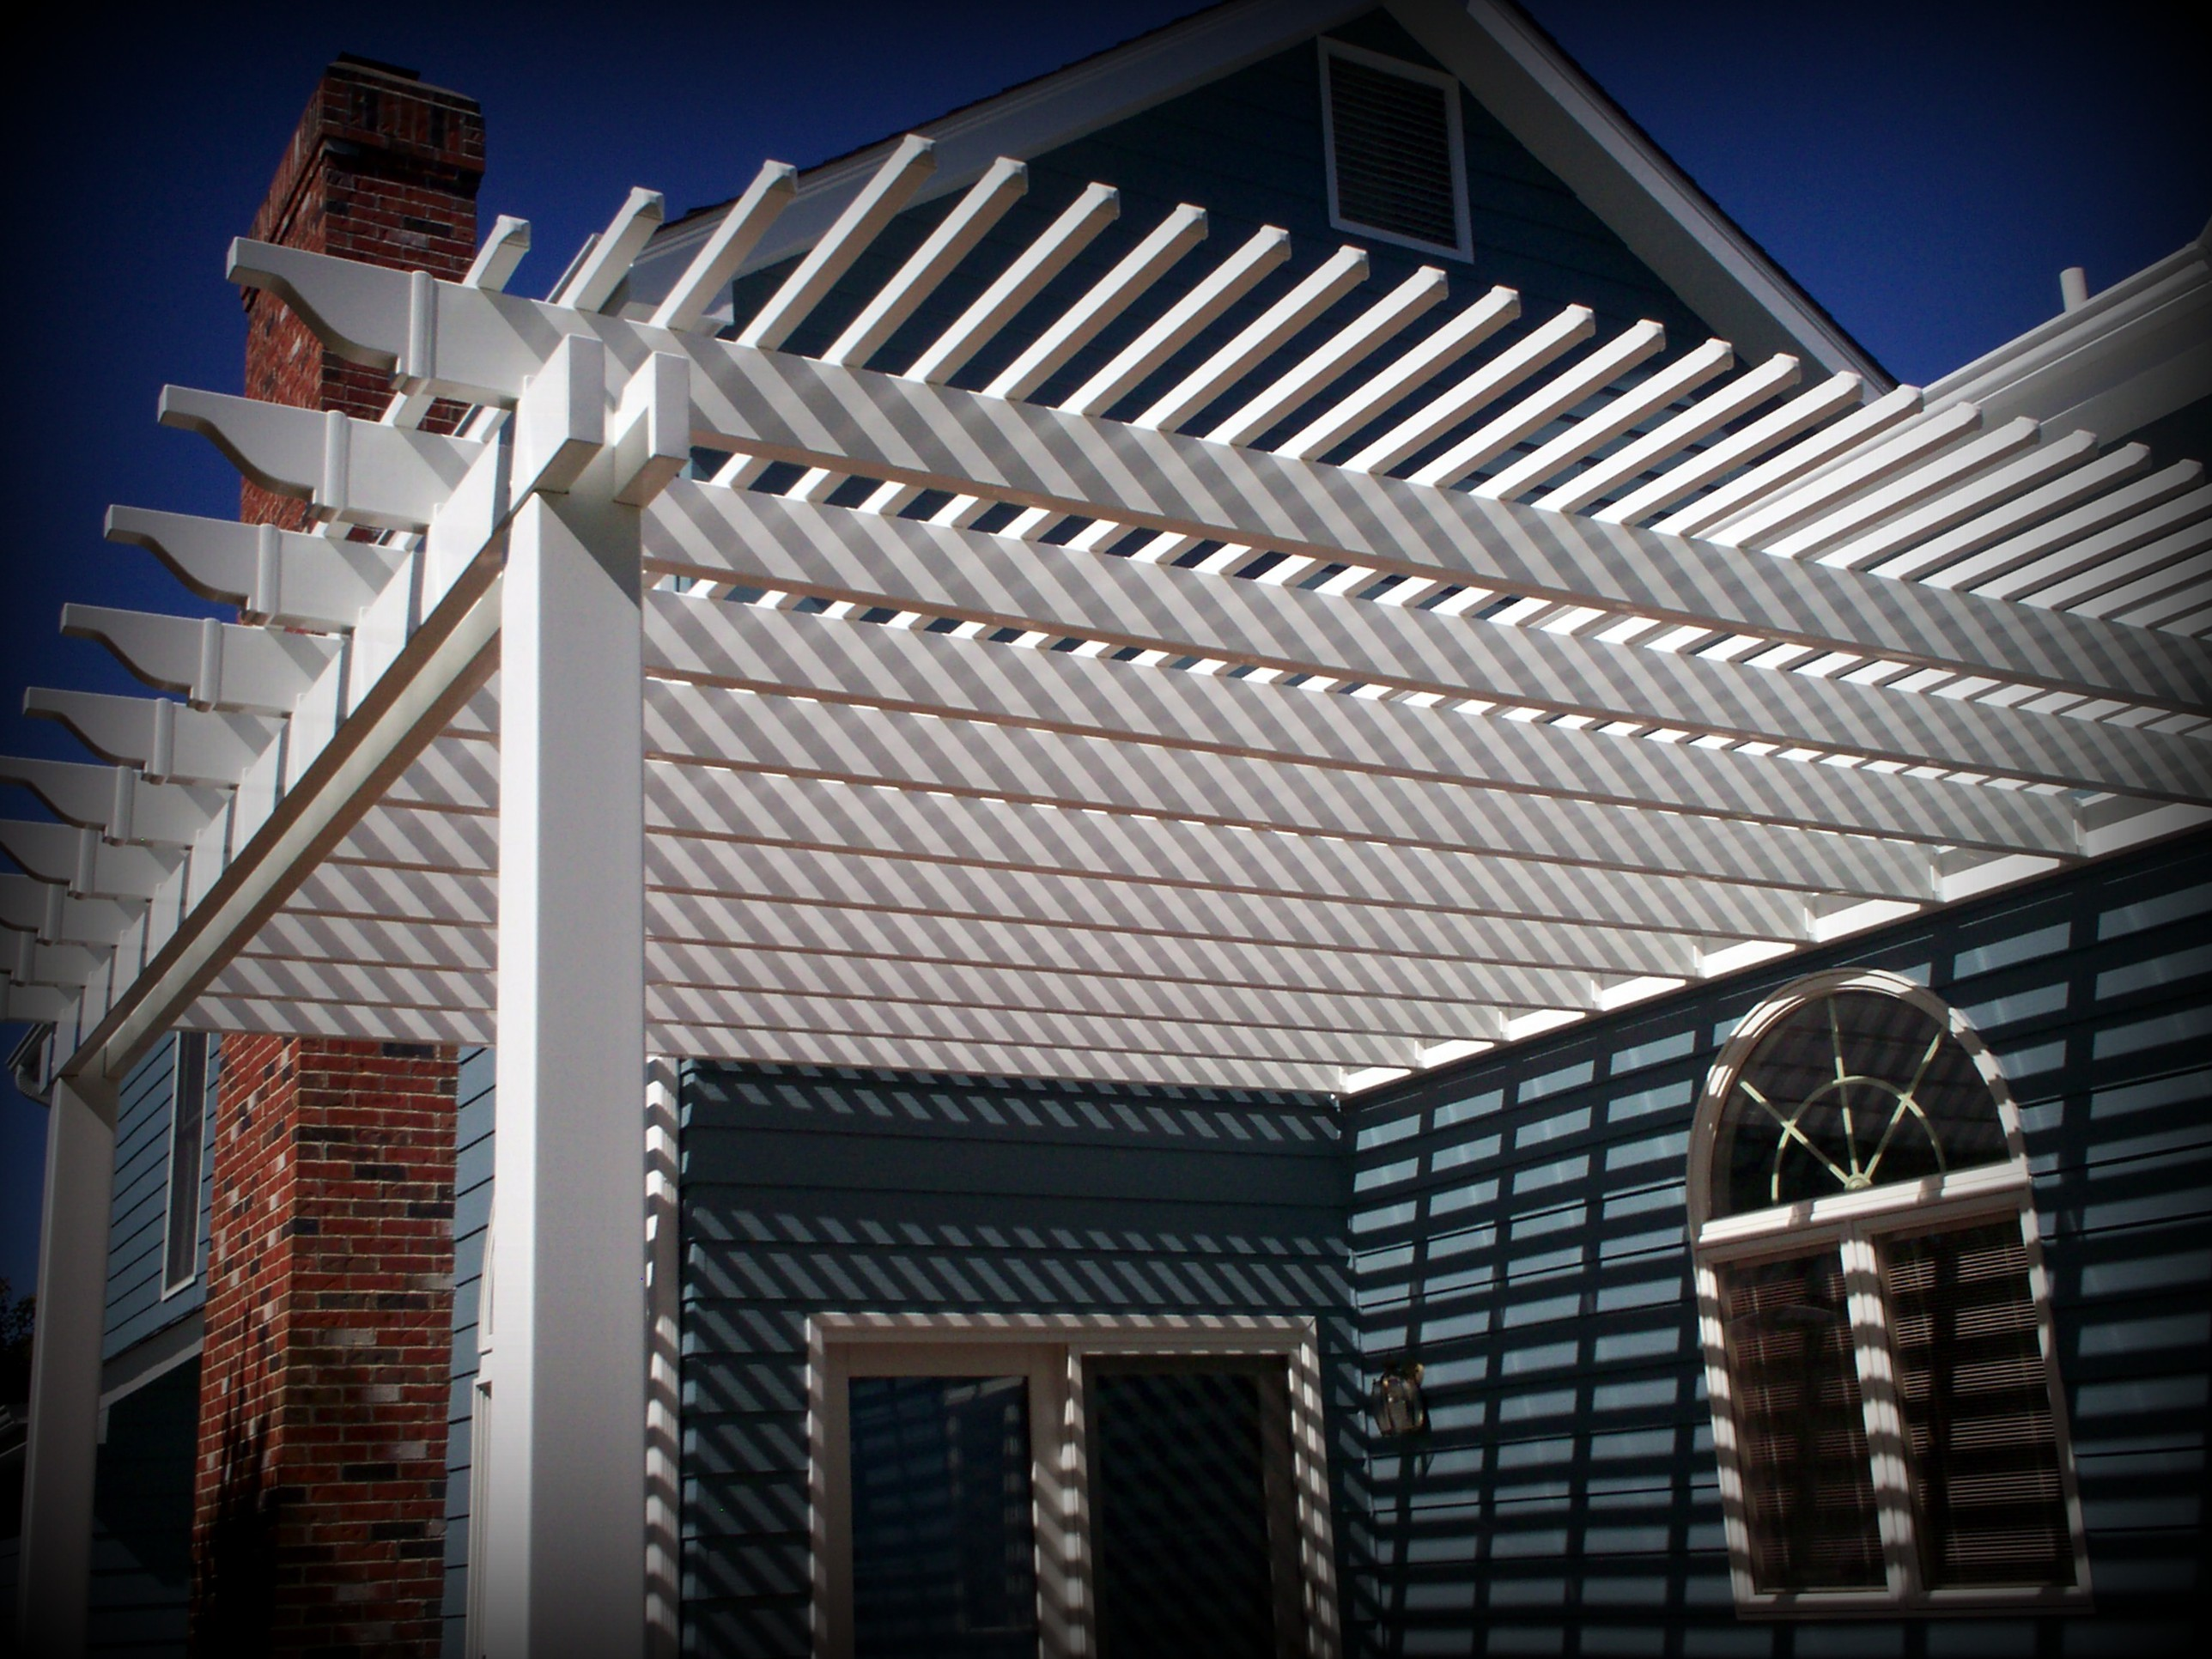 Shade Pergola Covers Back Porch Deck in St Louis West County